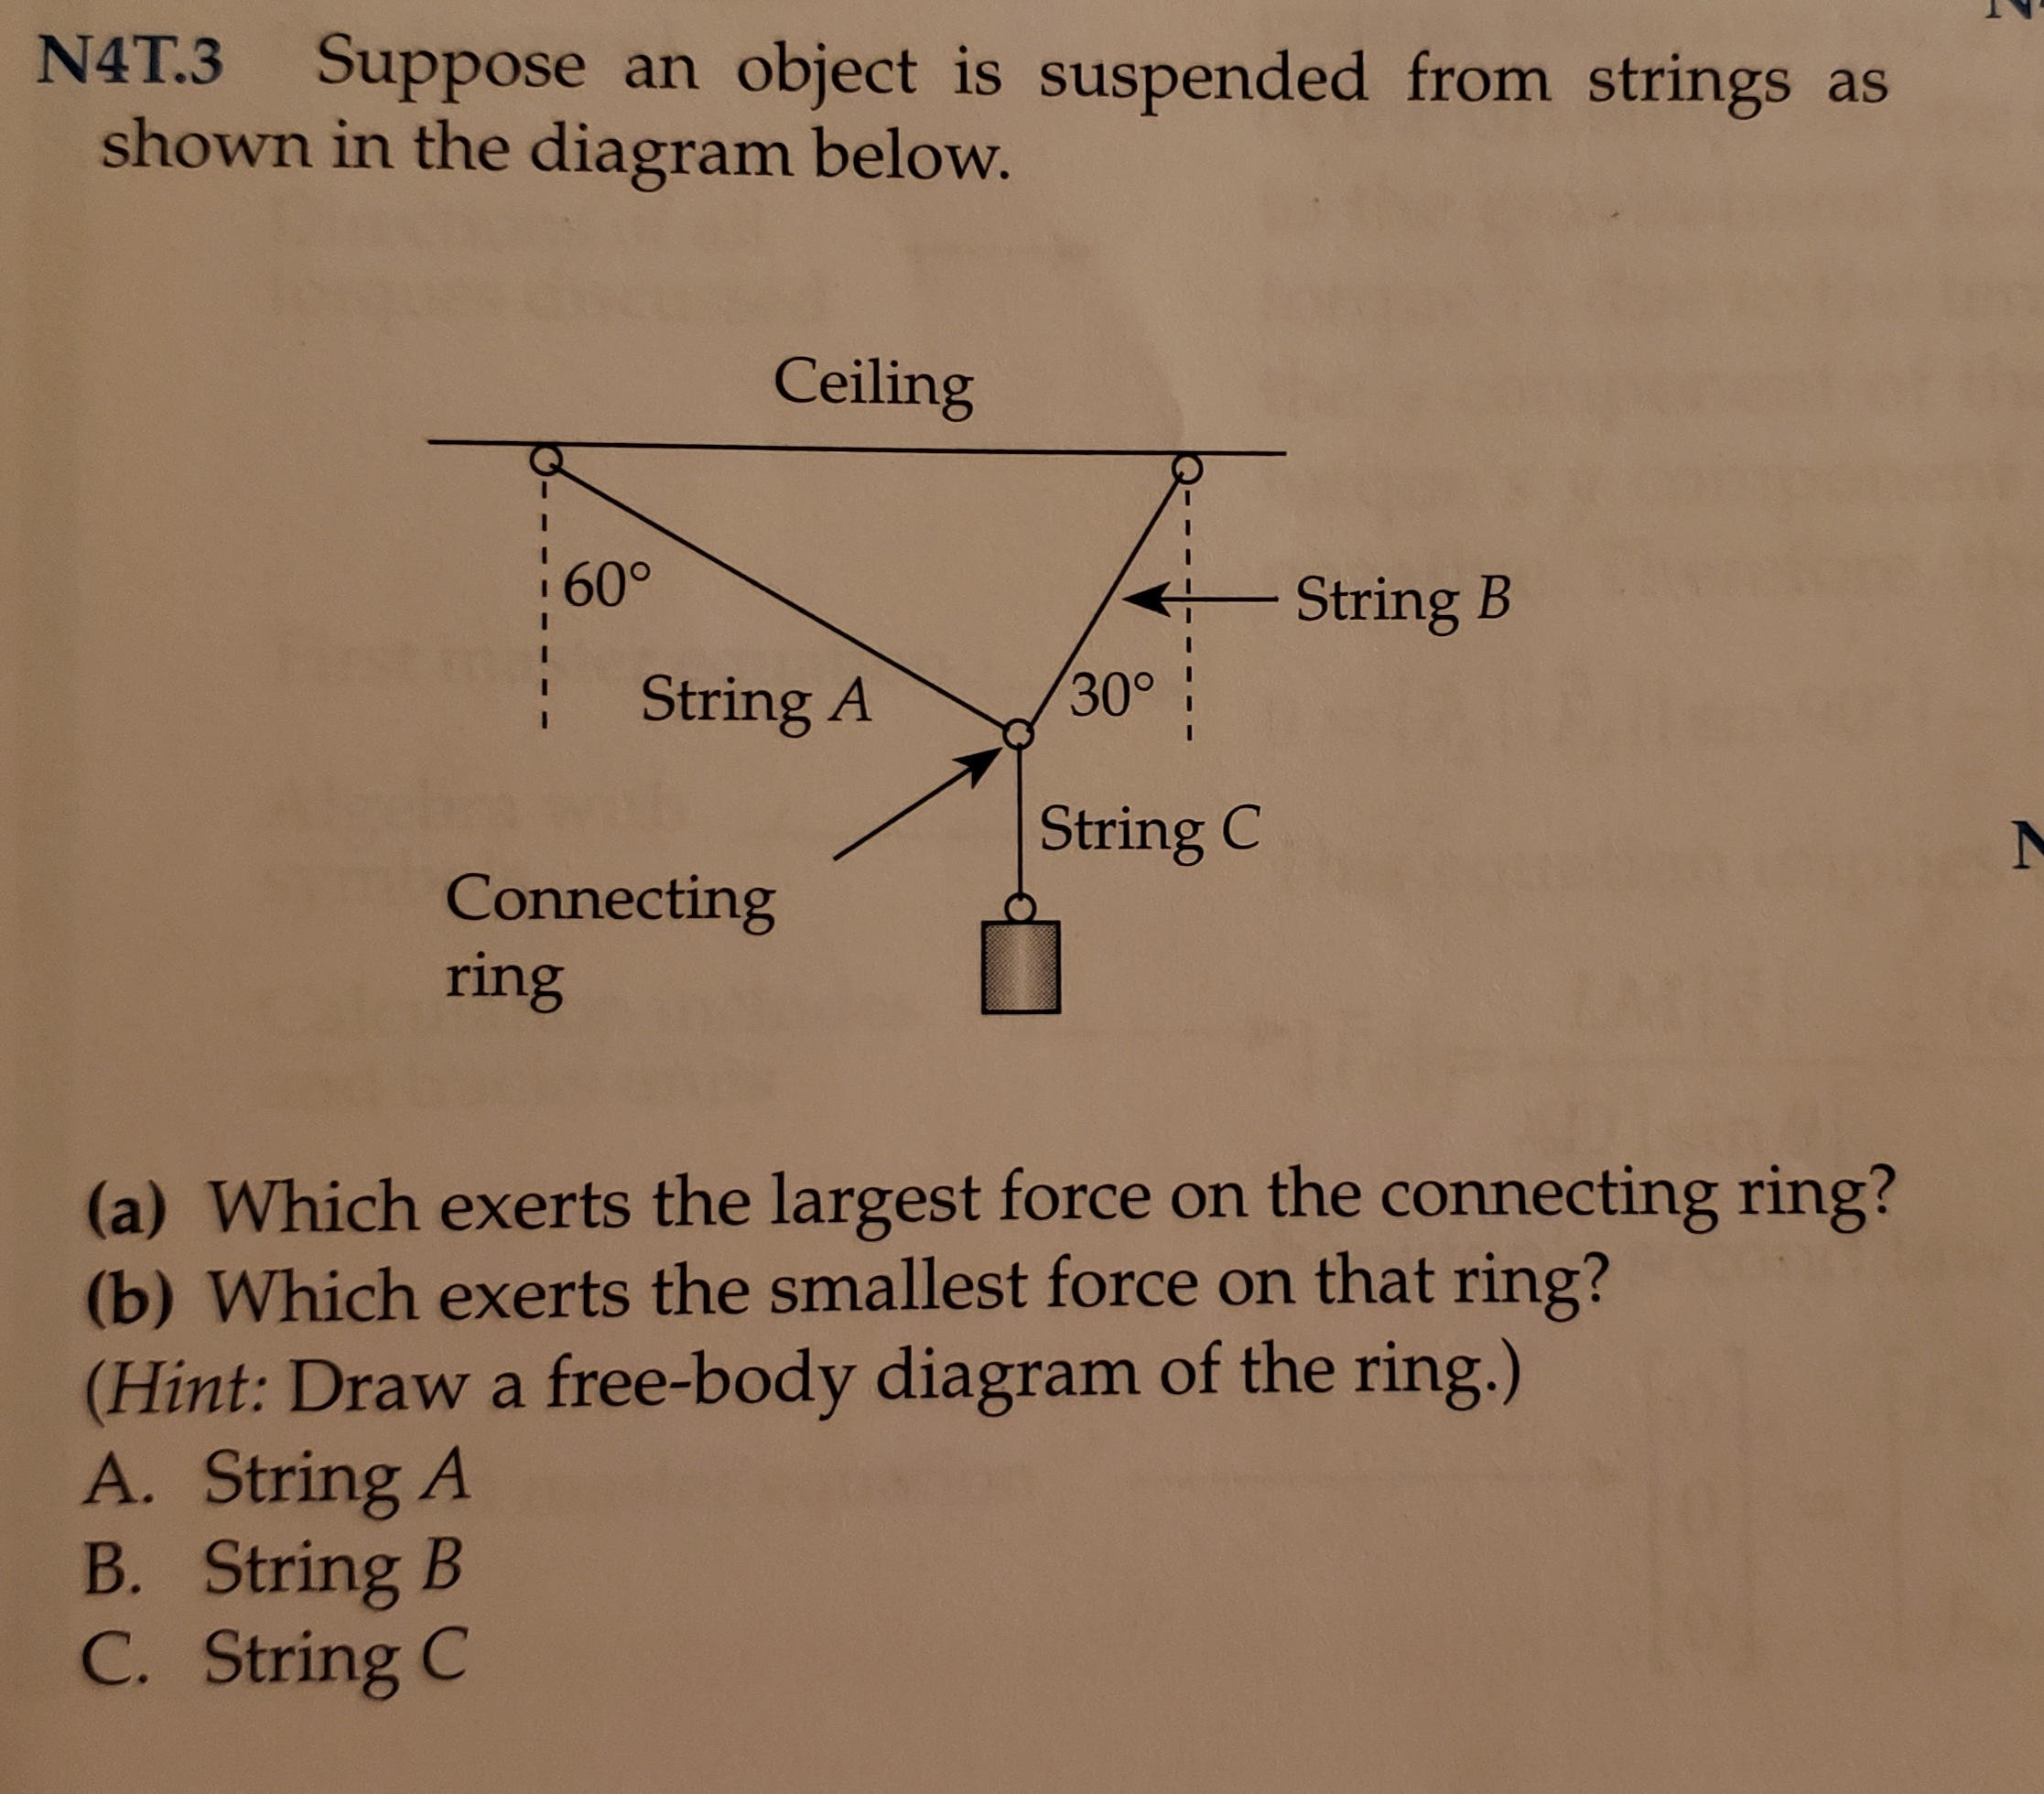 N4T.3 Suppose an object is suspended from strings as shown in the diagram below. Ceiling 60° String B 30° String A String C Connecting ring (a) Which exerts the largest force on the connecting ring? (b) Which exerts the smallest force on that ring? (Hint: Draw a free-body diagram of the ring.) A. String A B. String B C. String C